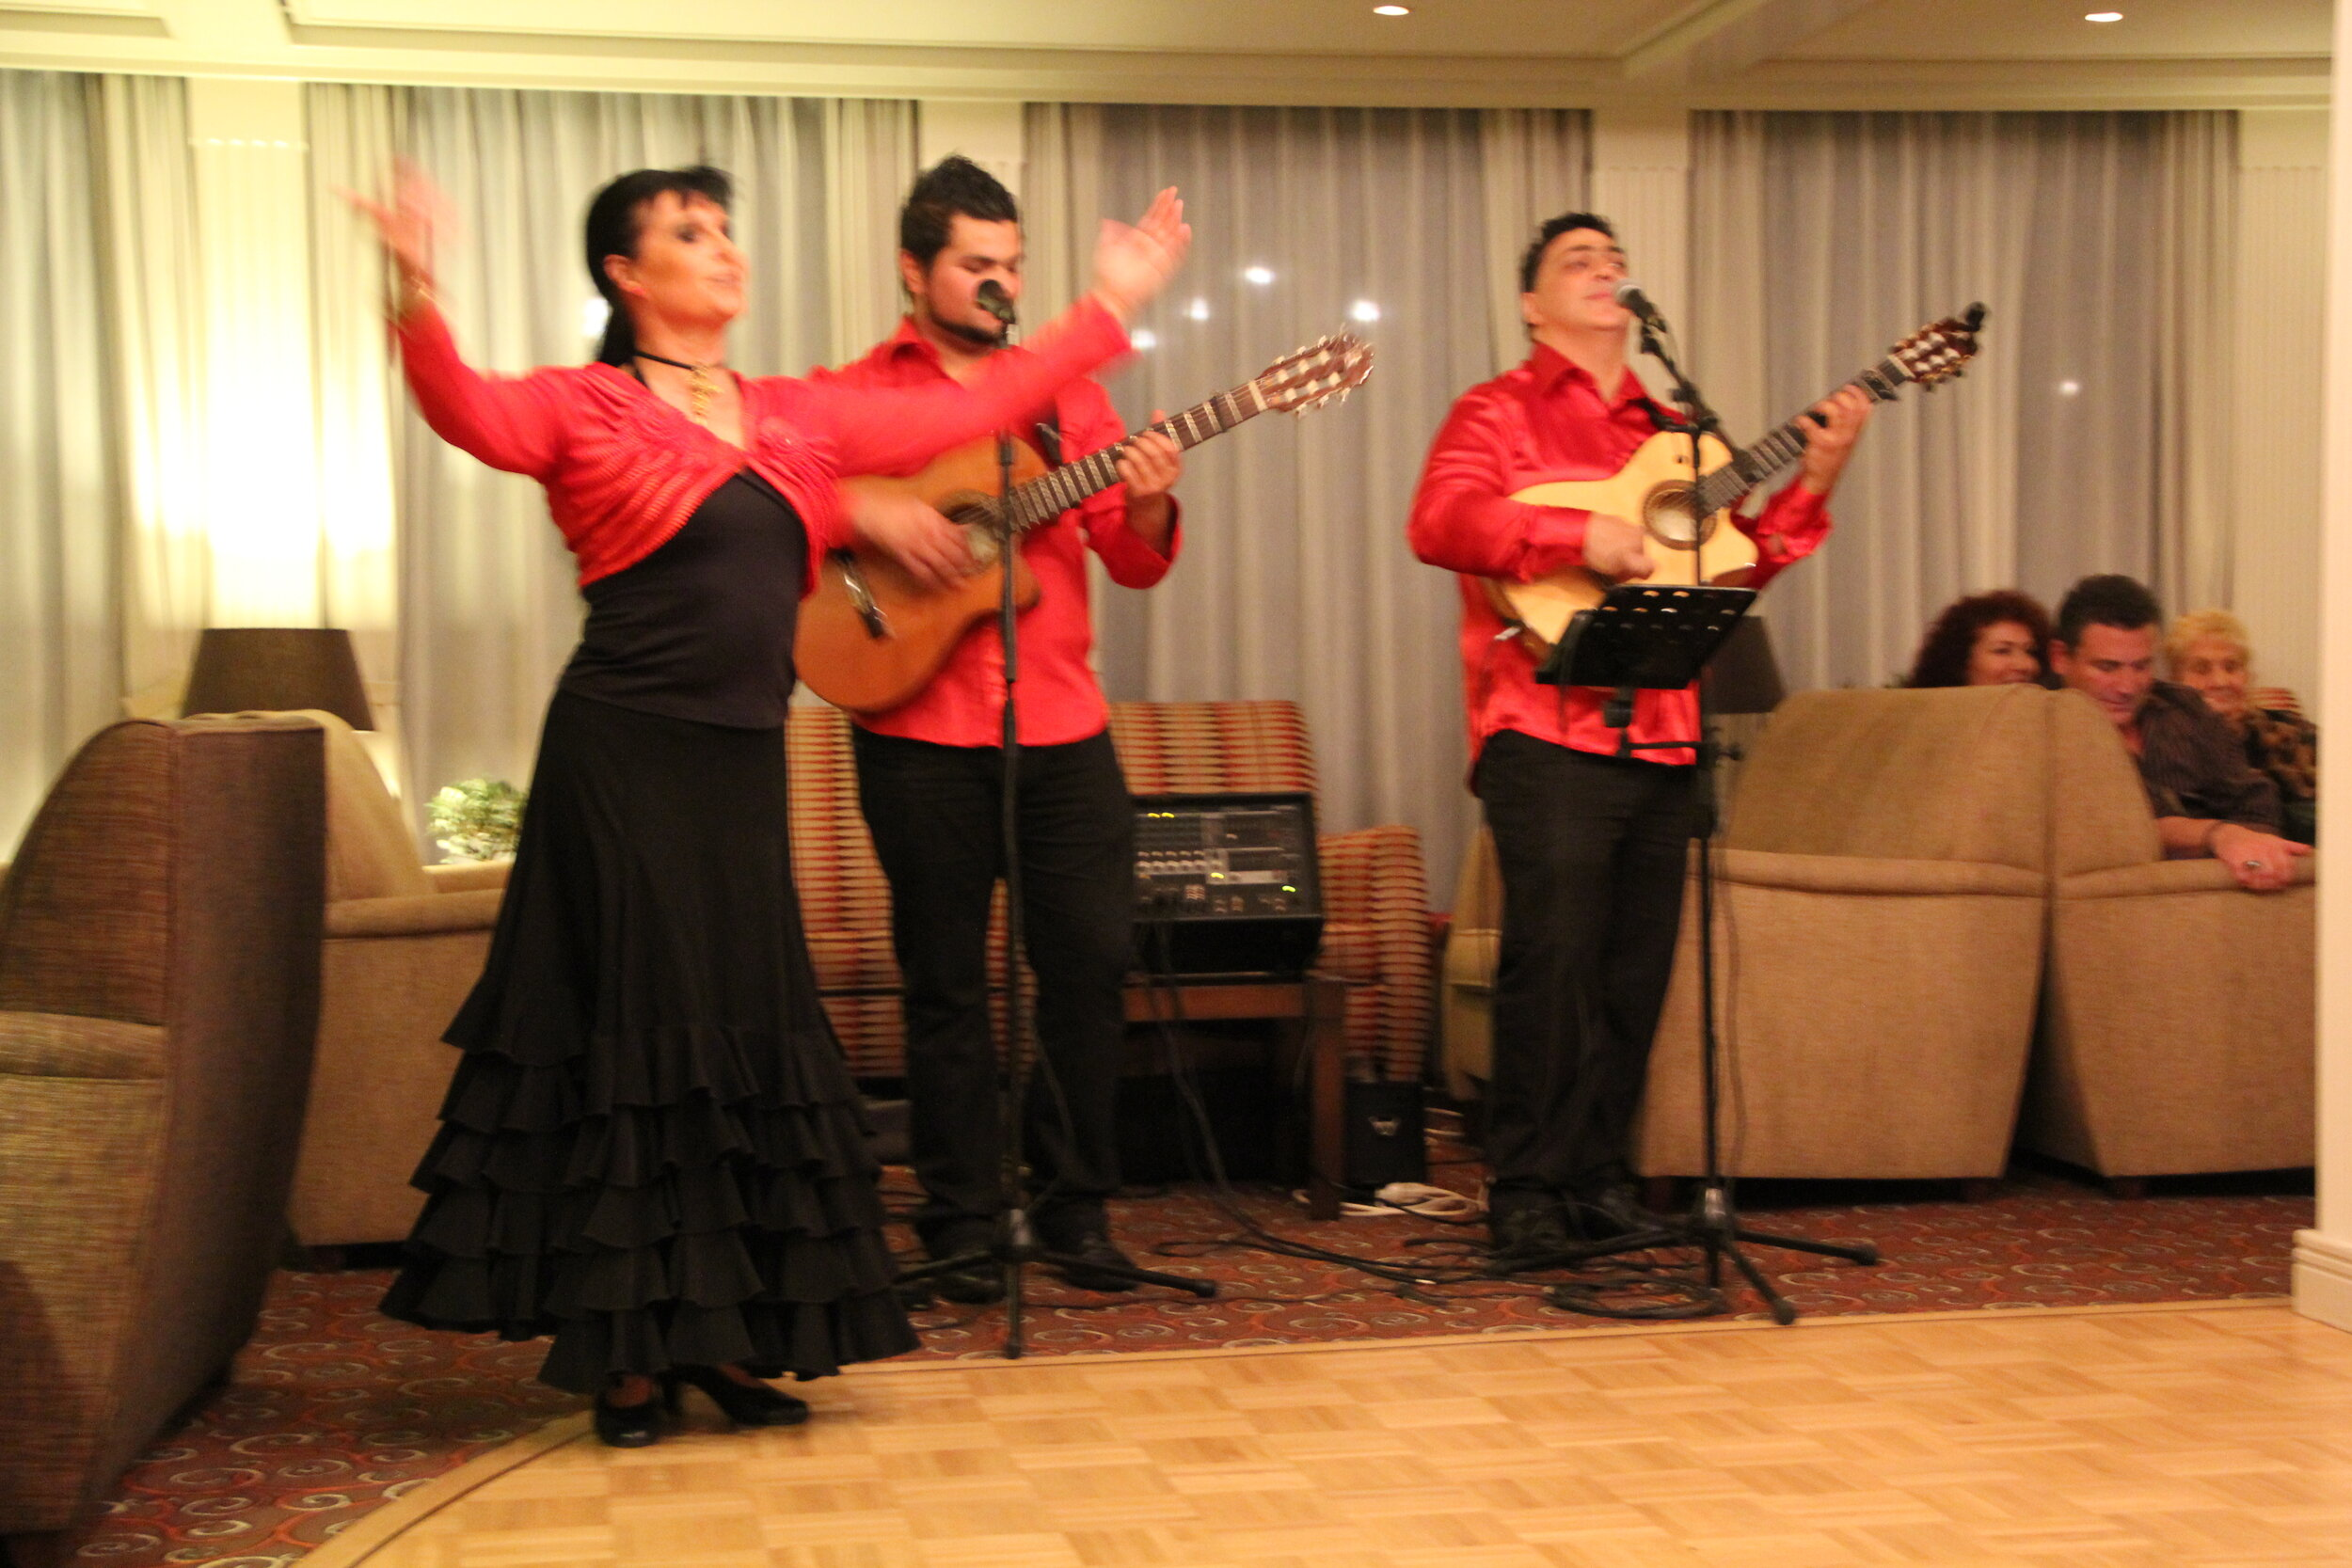 Local Entertainment Group on one of our river cruises in 2013